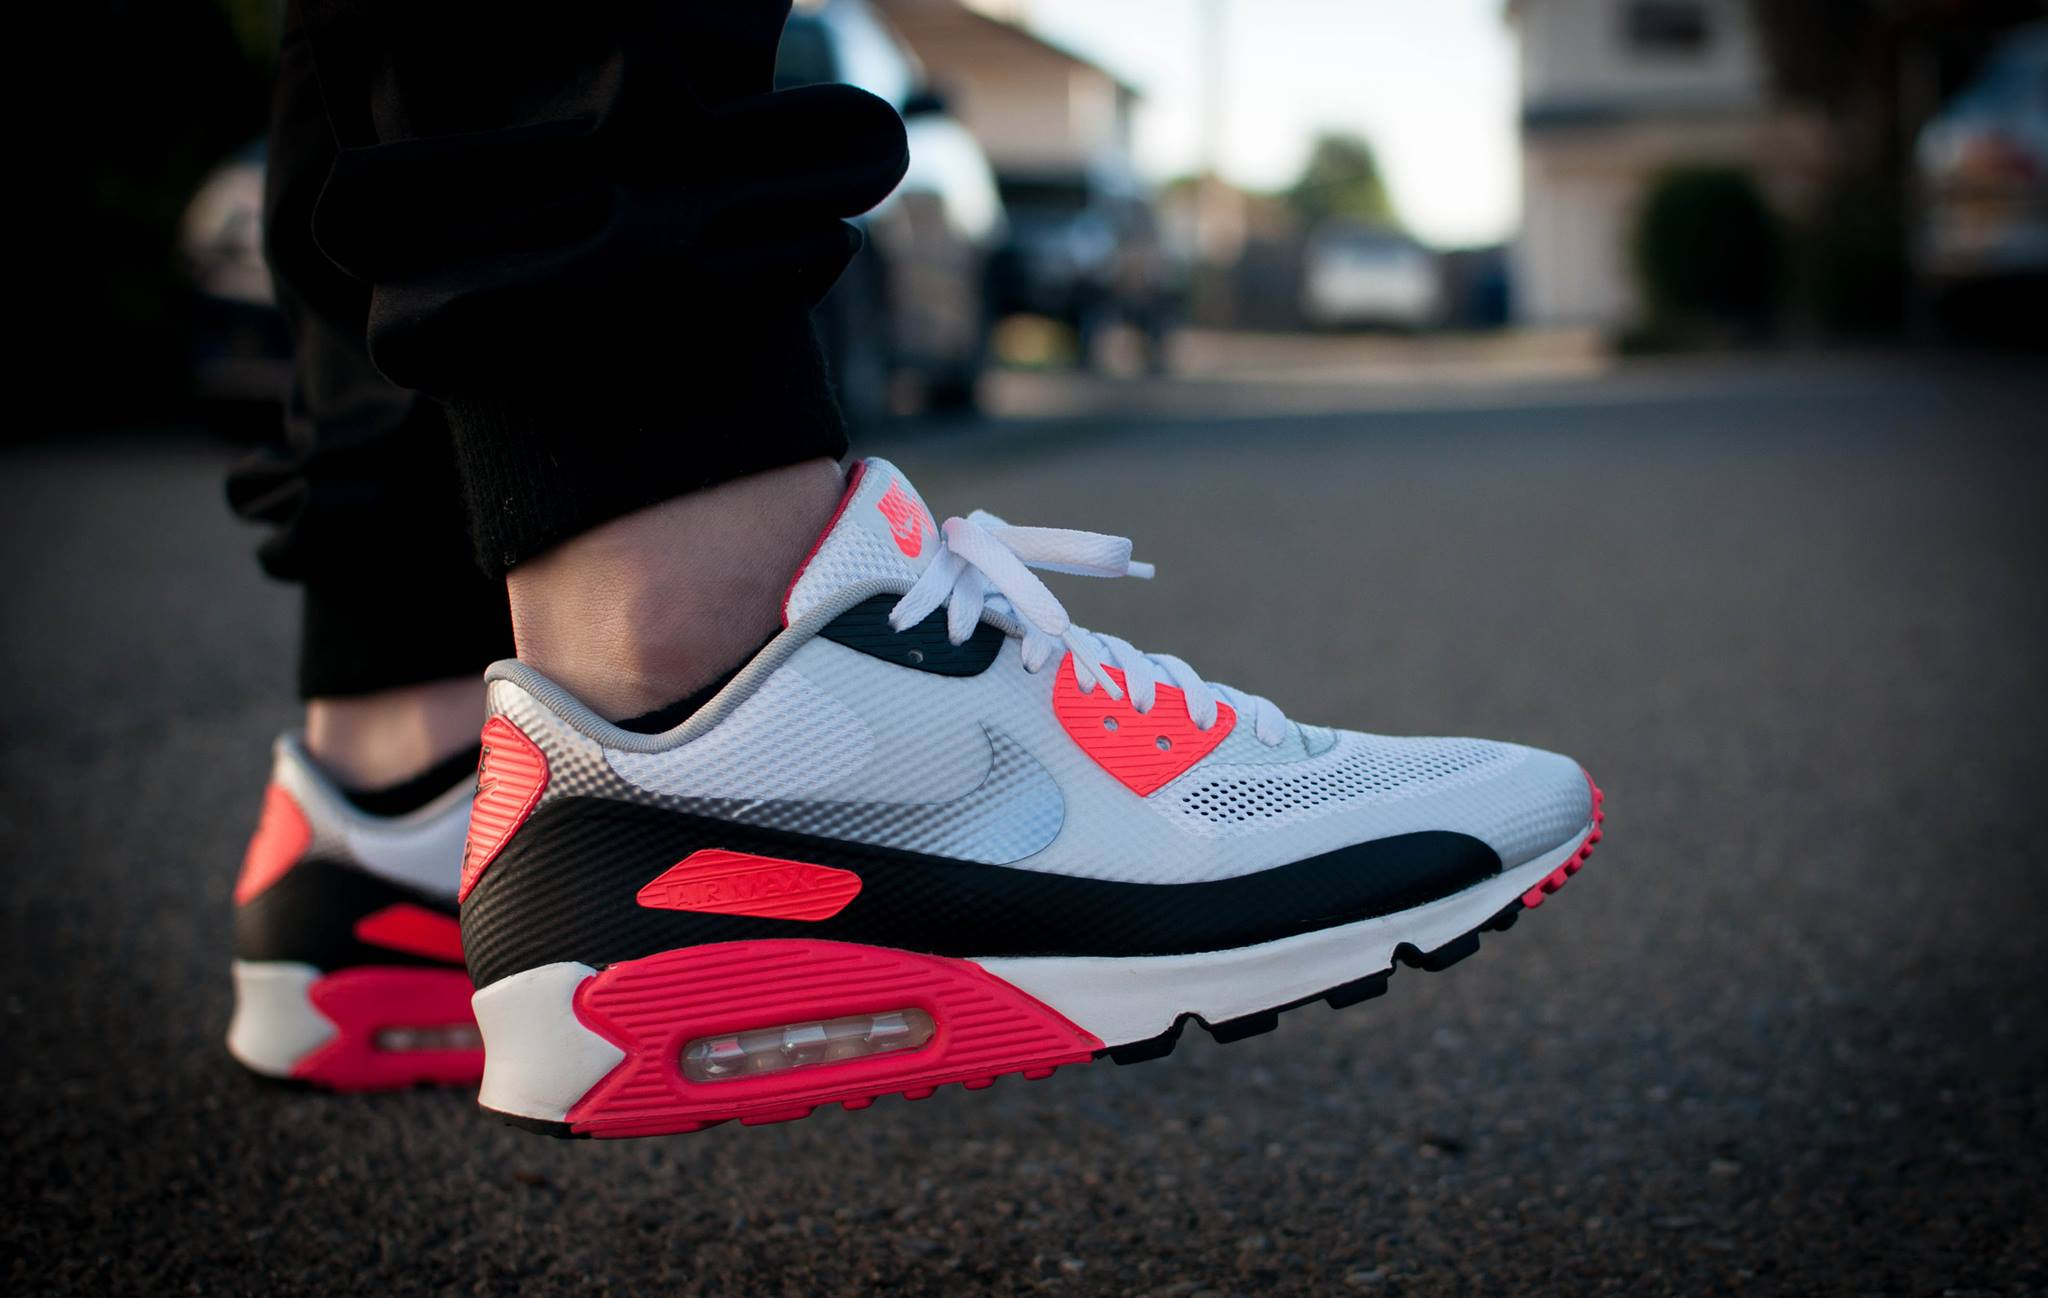 Air Max 90 Infrared Hyperfuse On Feet